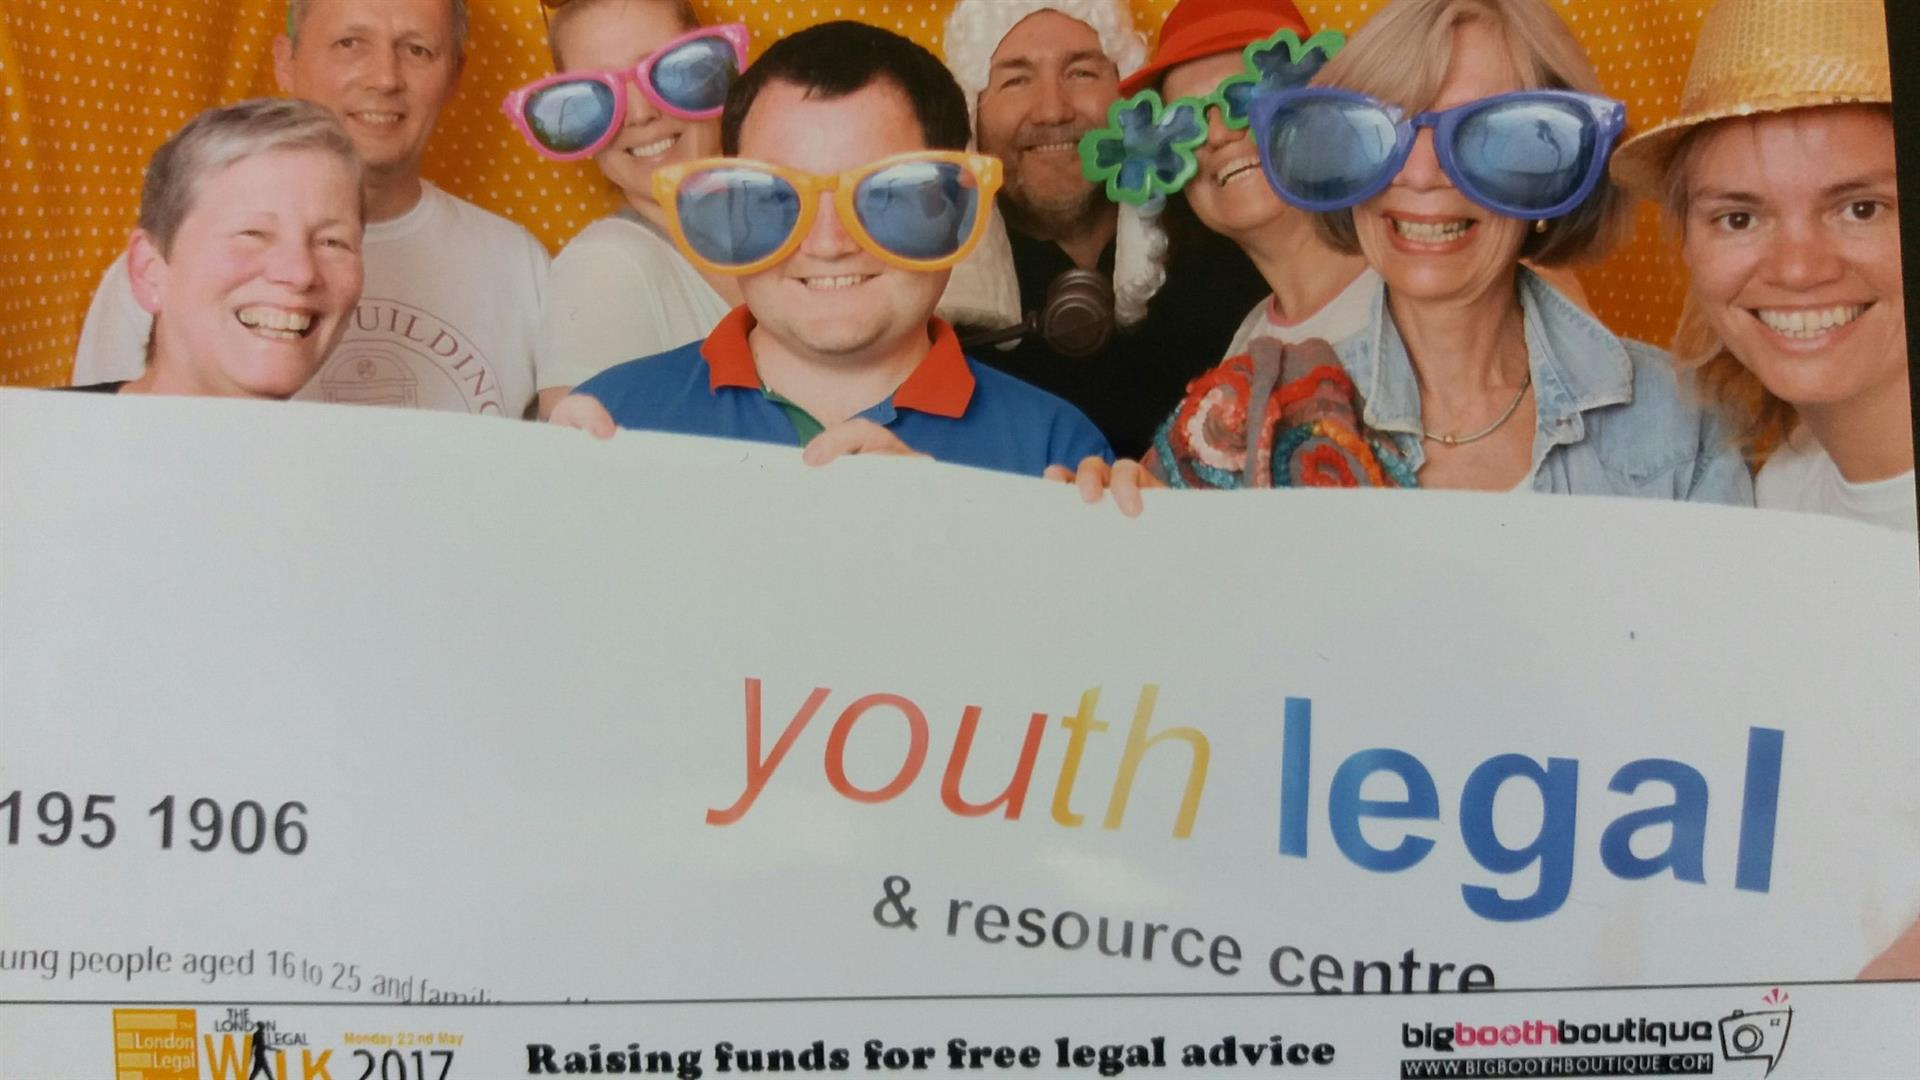 London Masons support Youth Legal and Resource Centre